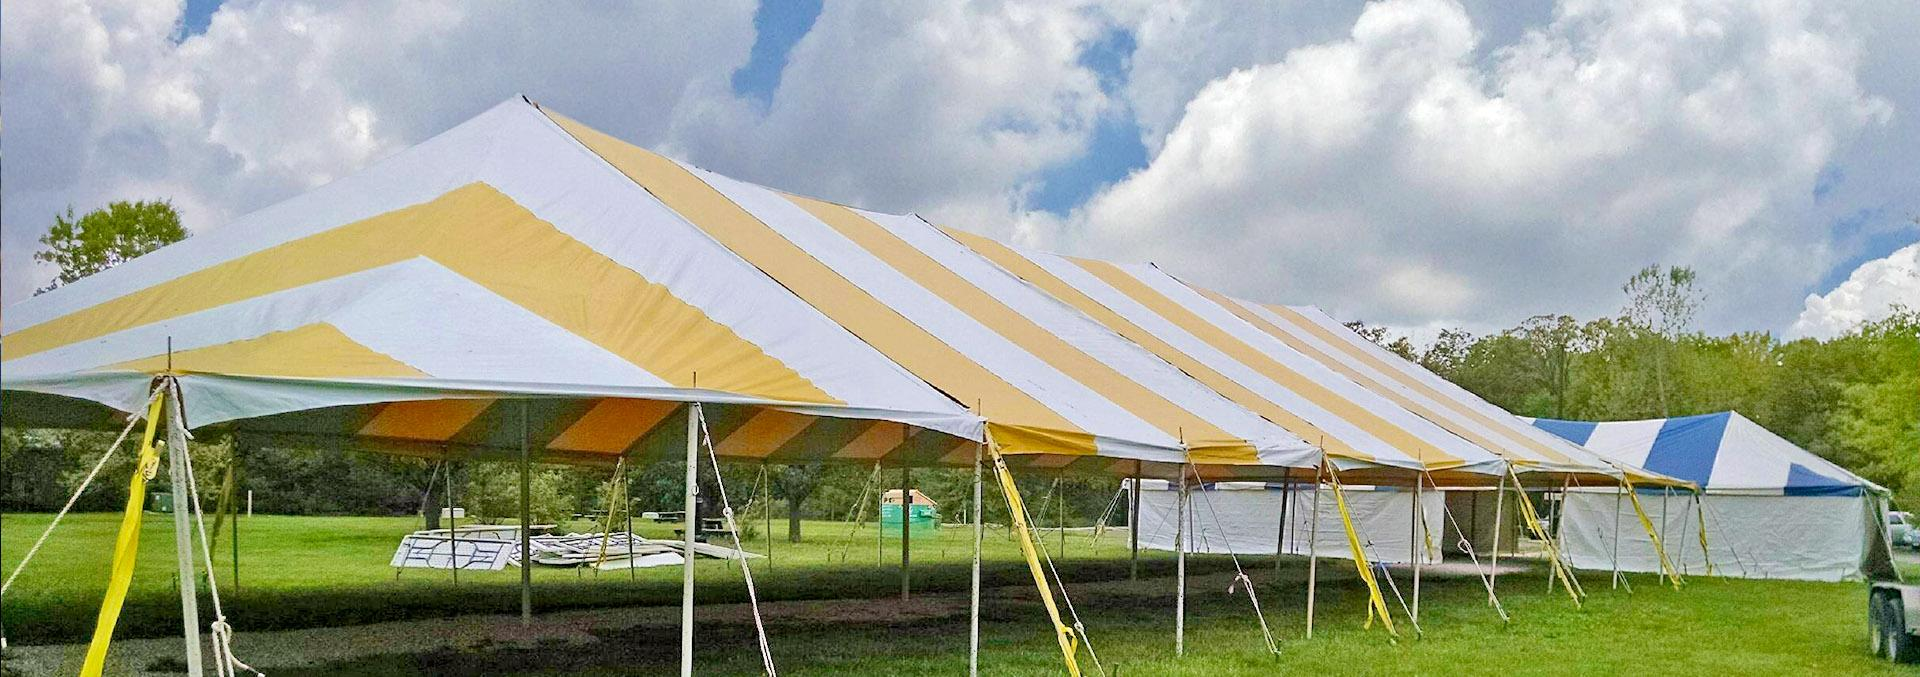 Wedding & Party Tents for Rent in Kansas City